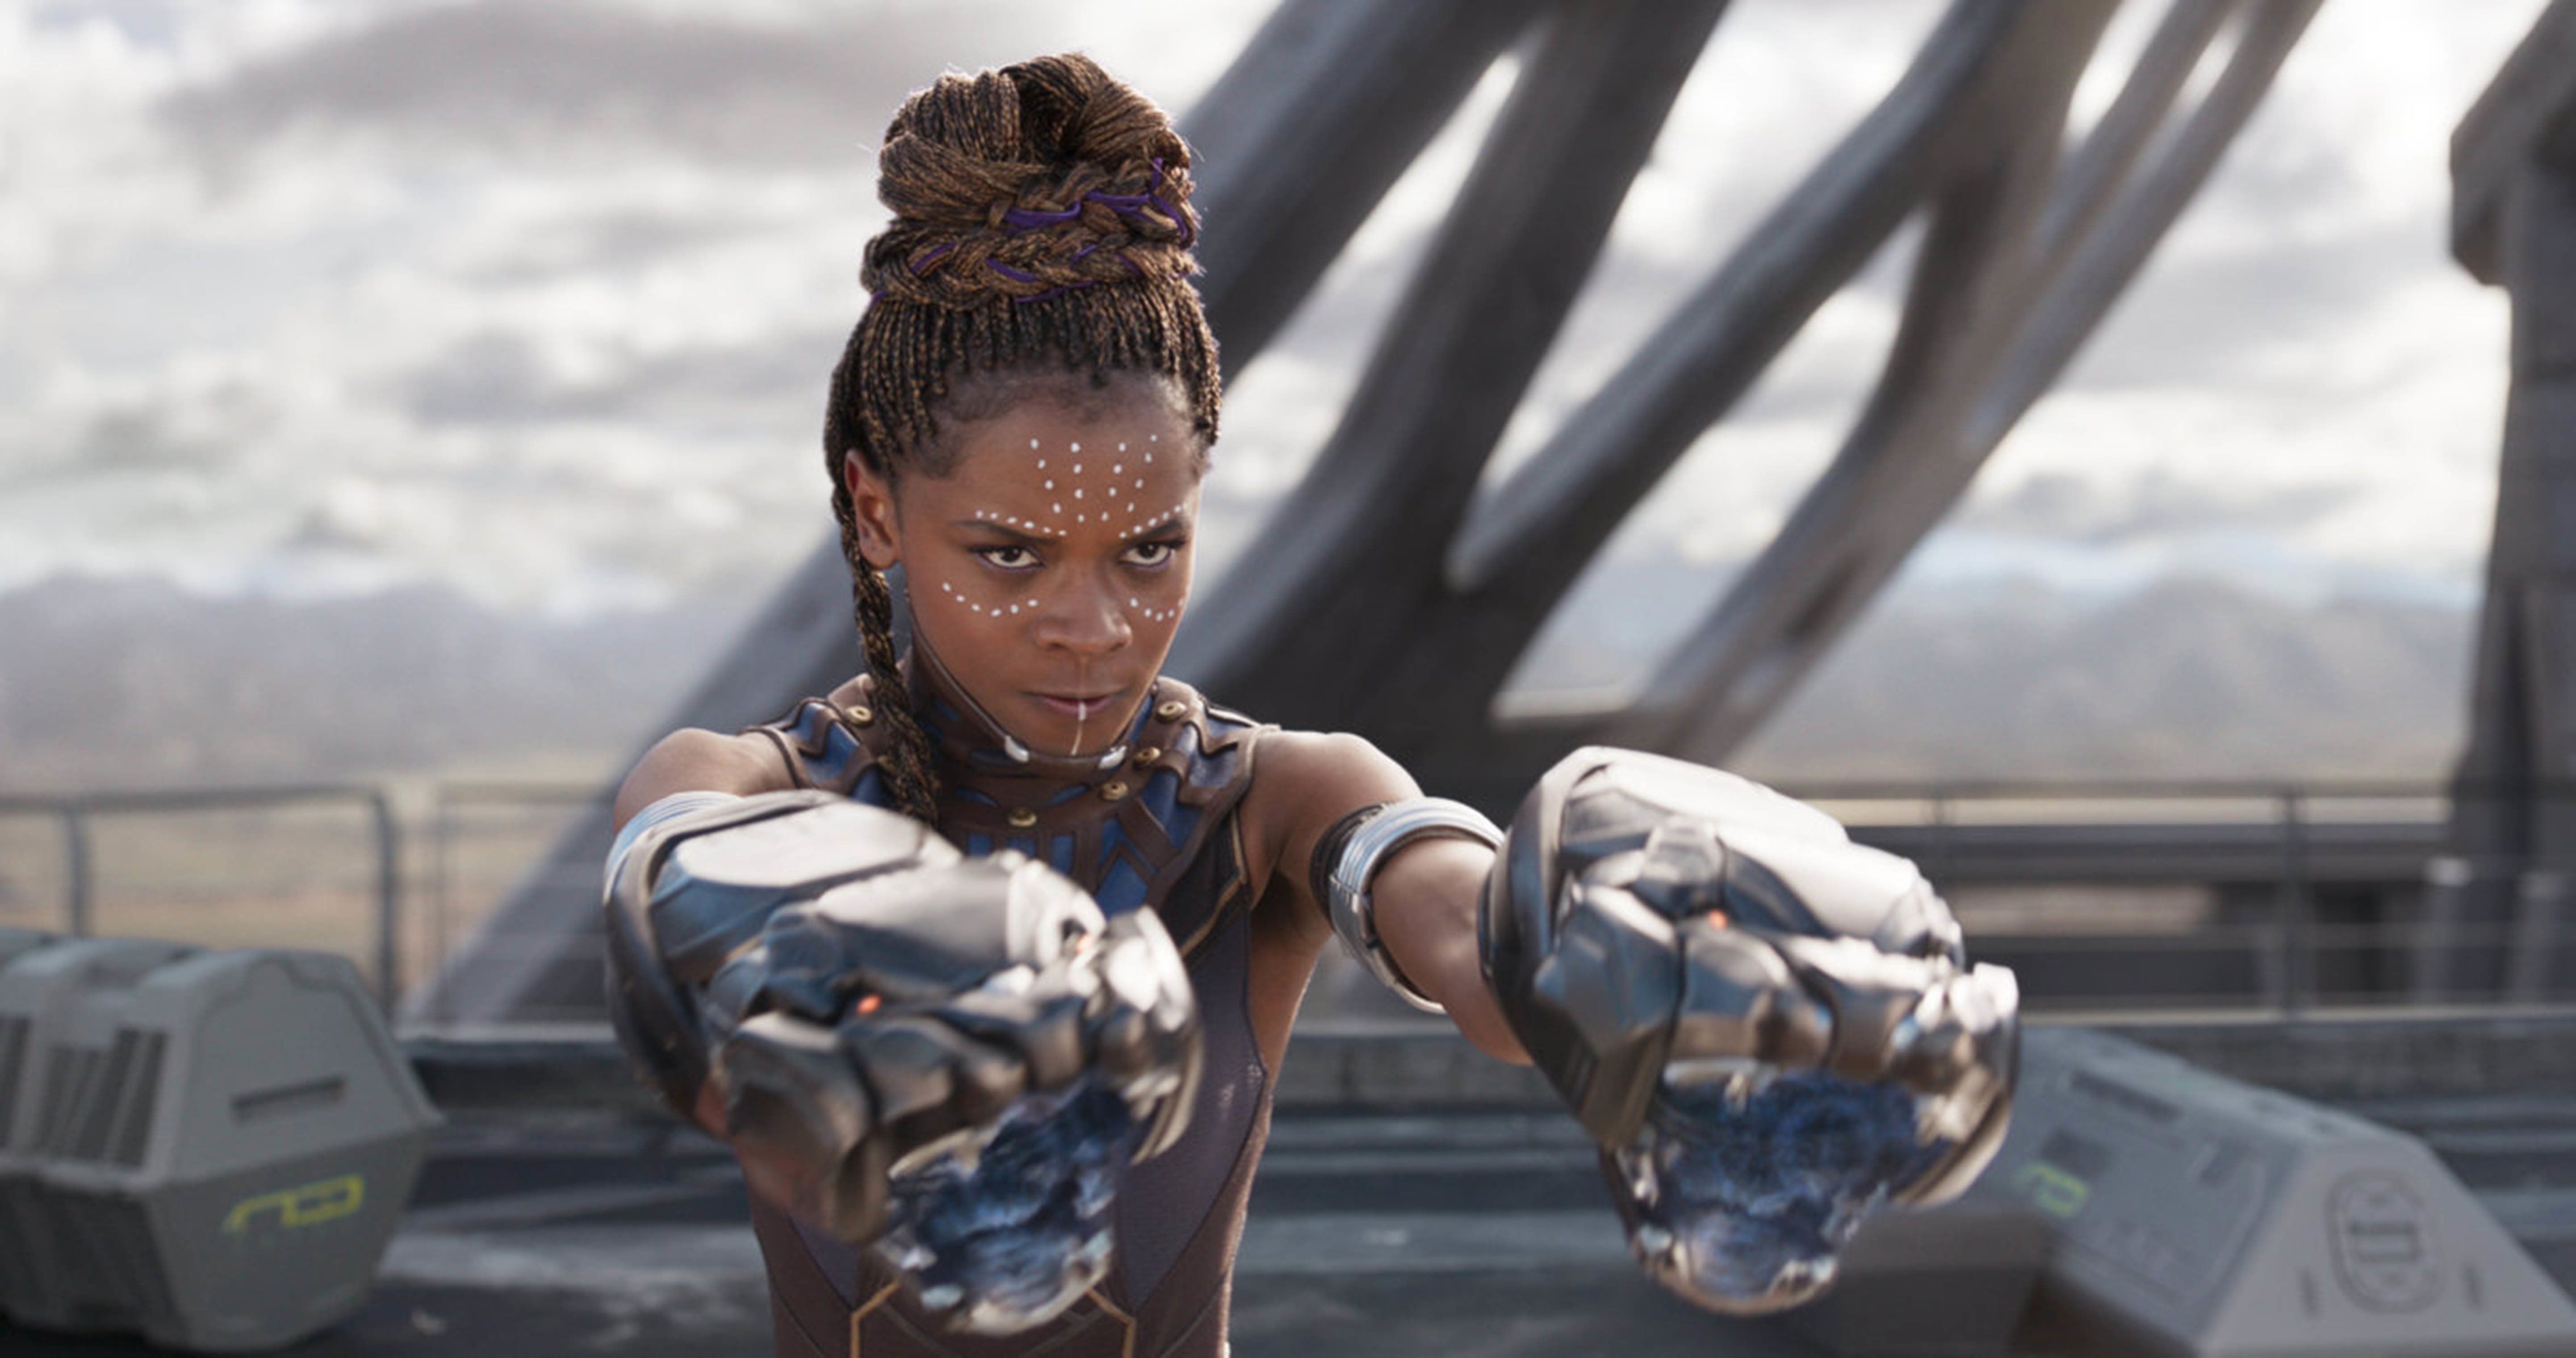 Get To Know Letitia Wright, The 'Black Panther' Star Everyone Is Going To Be Talking About